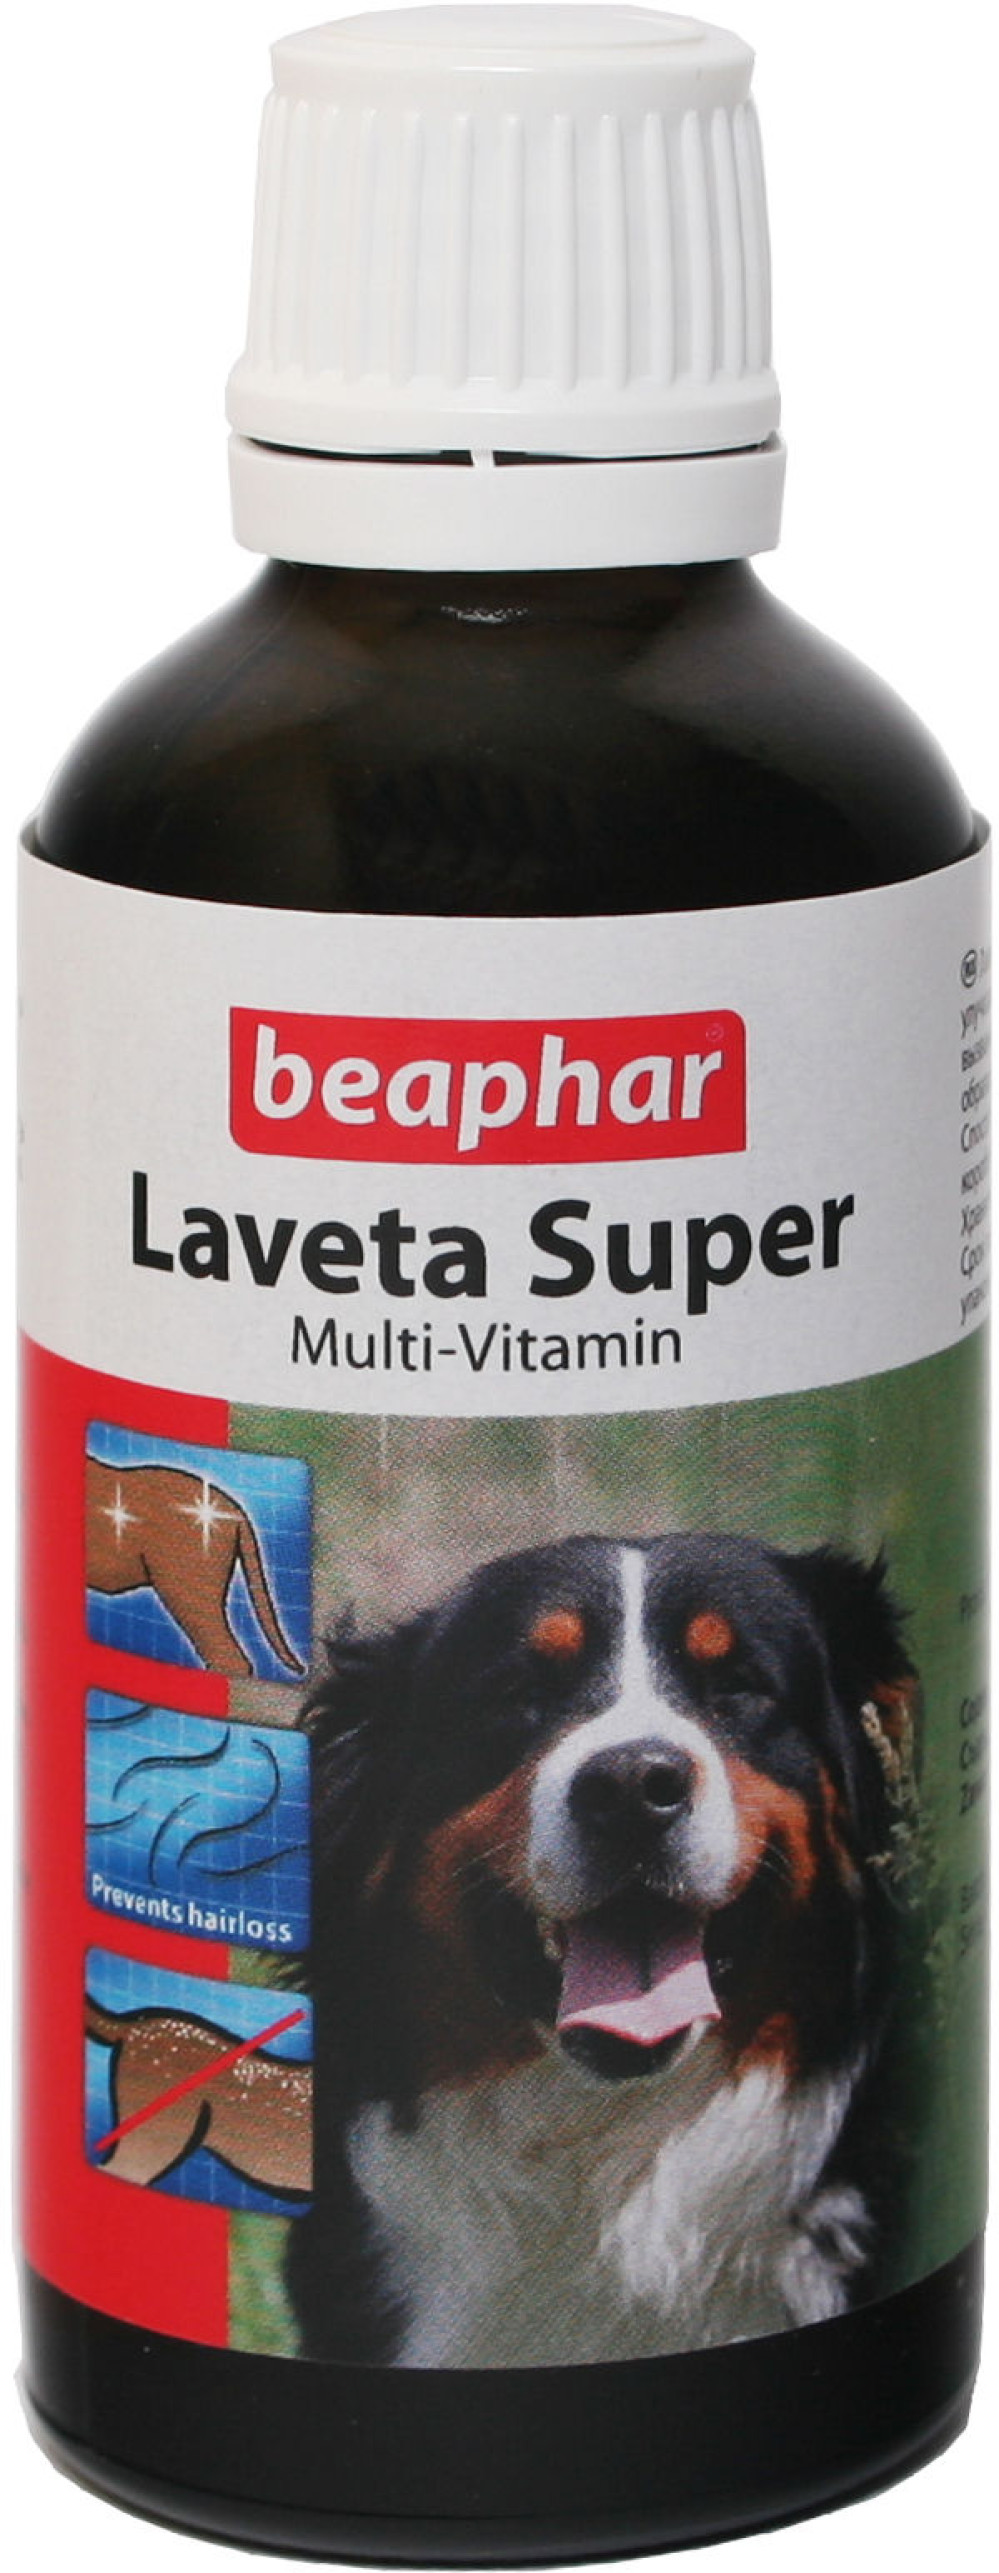 zoo/Beaphar_Laveta_Super_For_Dogs